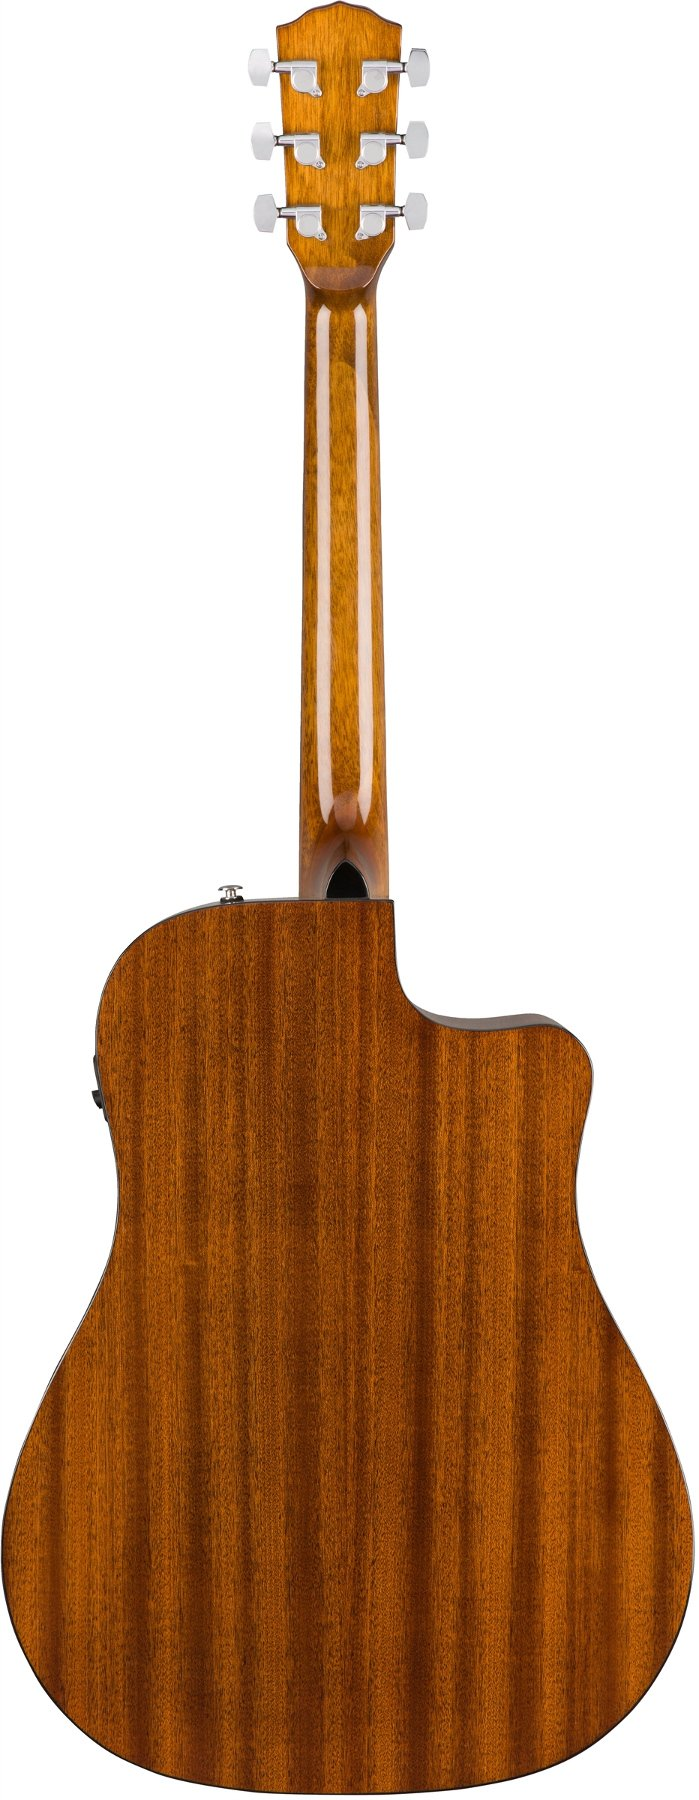 Dreadnought Cutaway Acoustic-Electric Guitar with Rosewood Fingerboard, Left-Handed